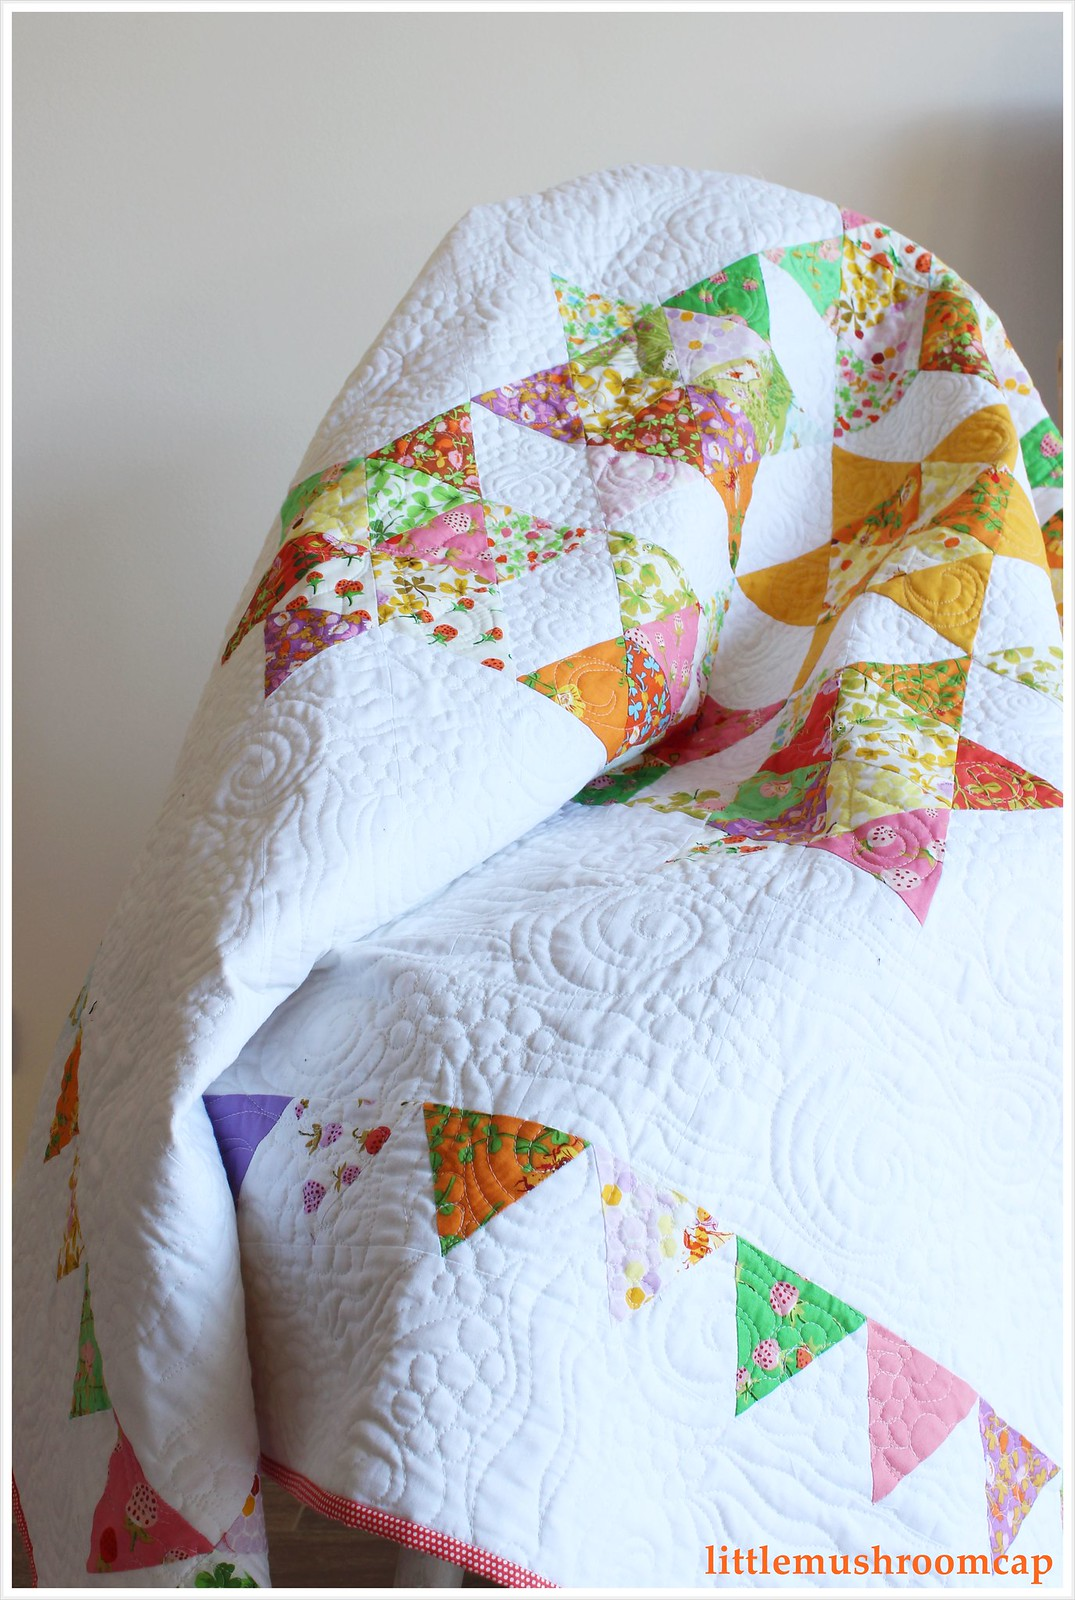 Quilt Briar Rose Starry Diamond Equilateral Triangle by littlemushroomcap 2